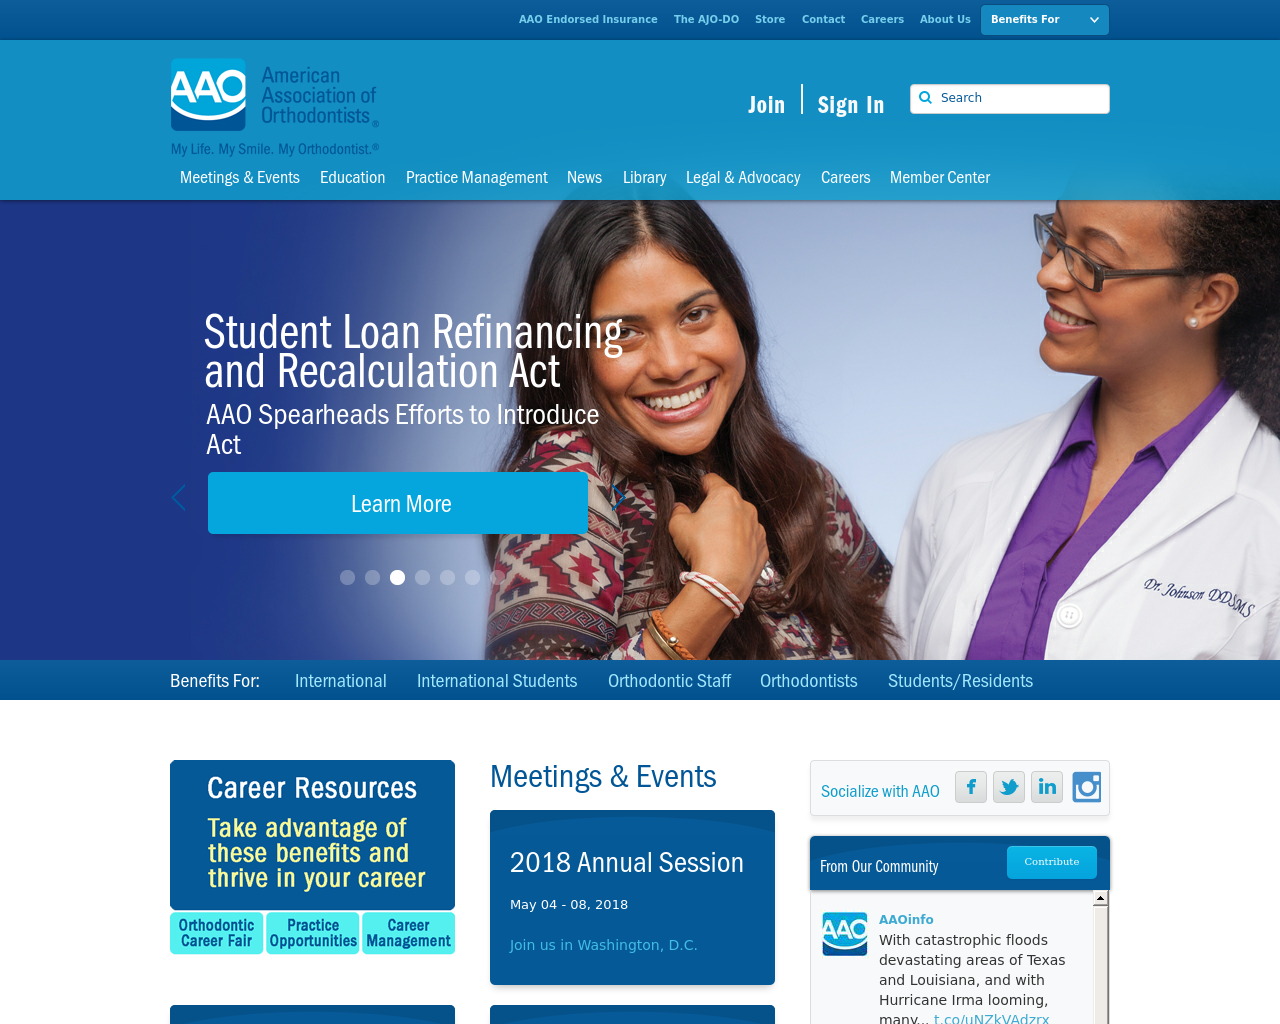 American-Association-Of-Orthodontists-Advertising-Reviews-Pricing